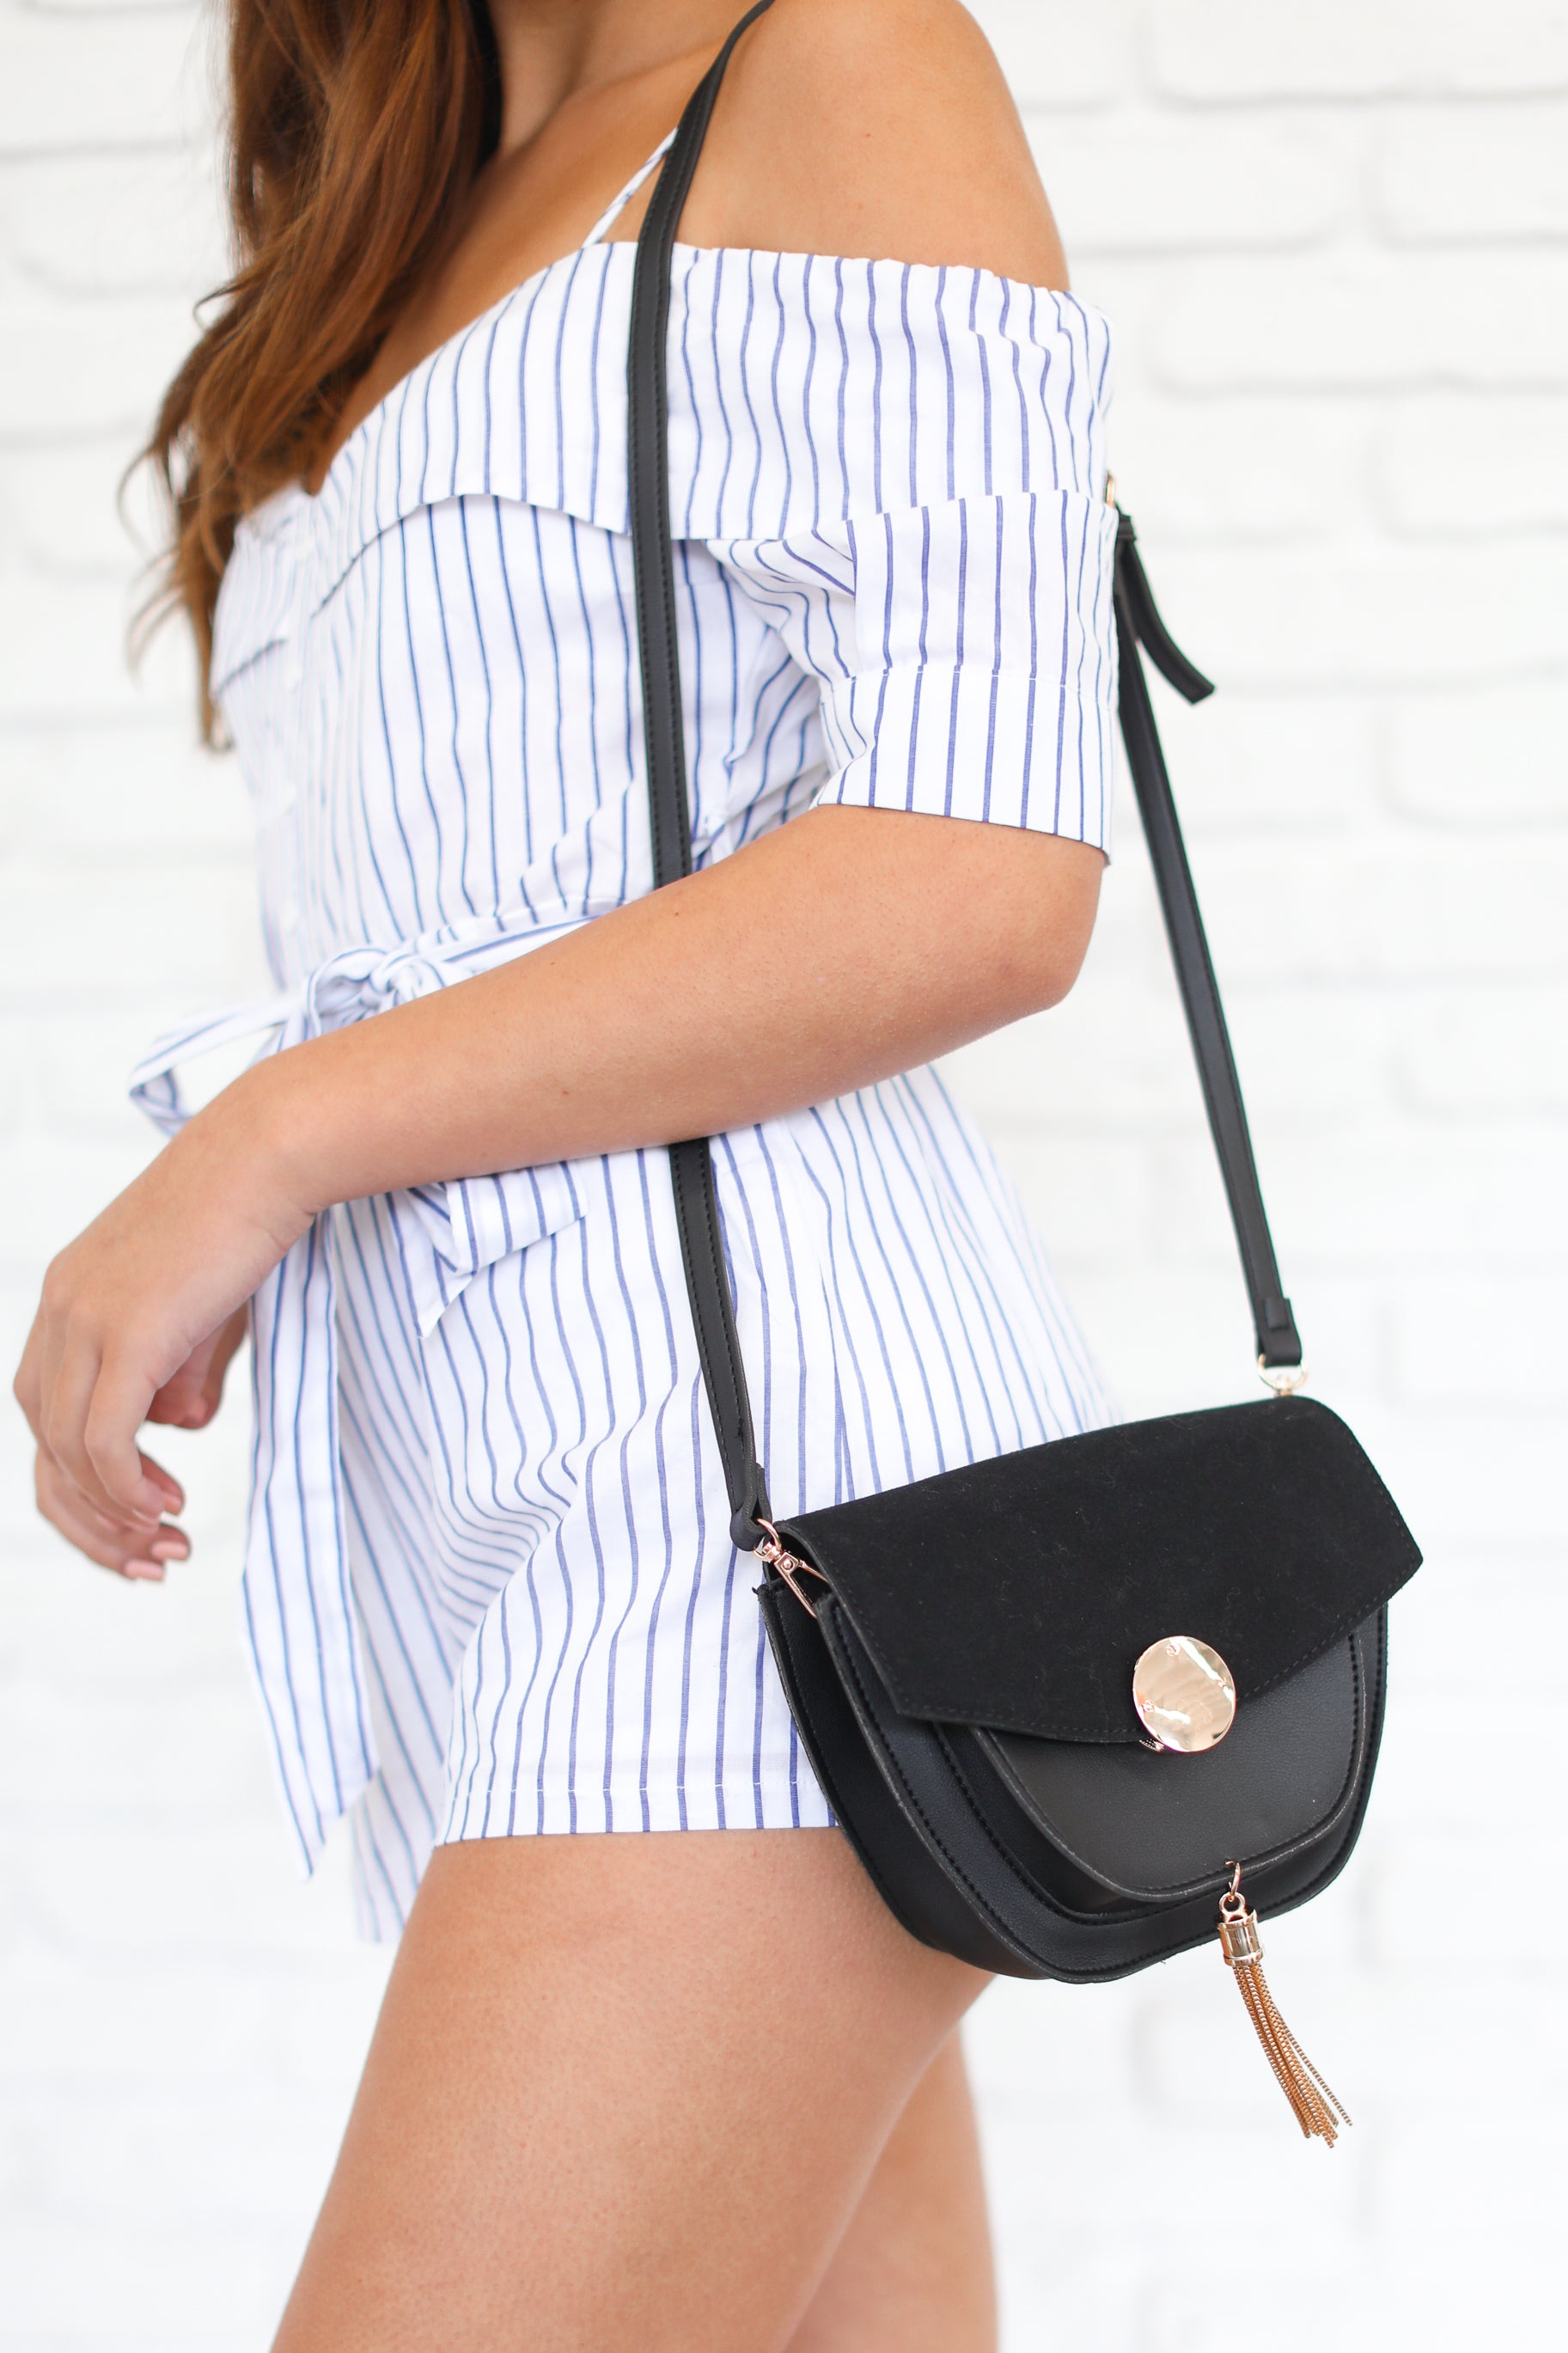 LIVE A LITTLE BLACK TASSEL PURSE